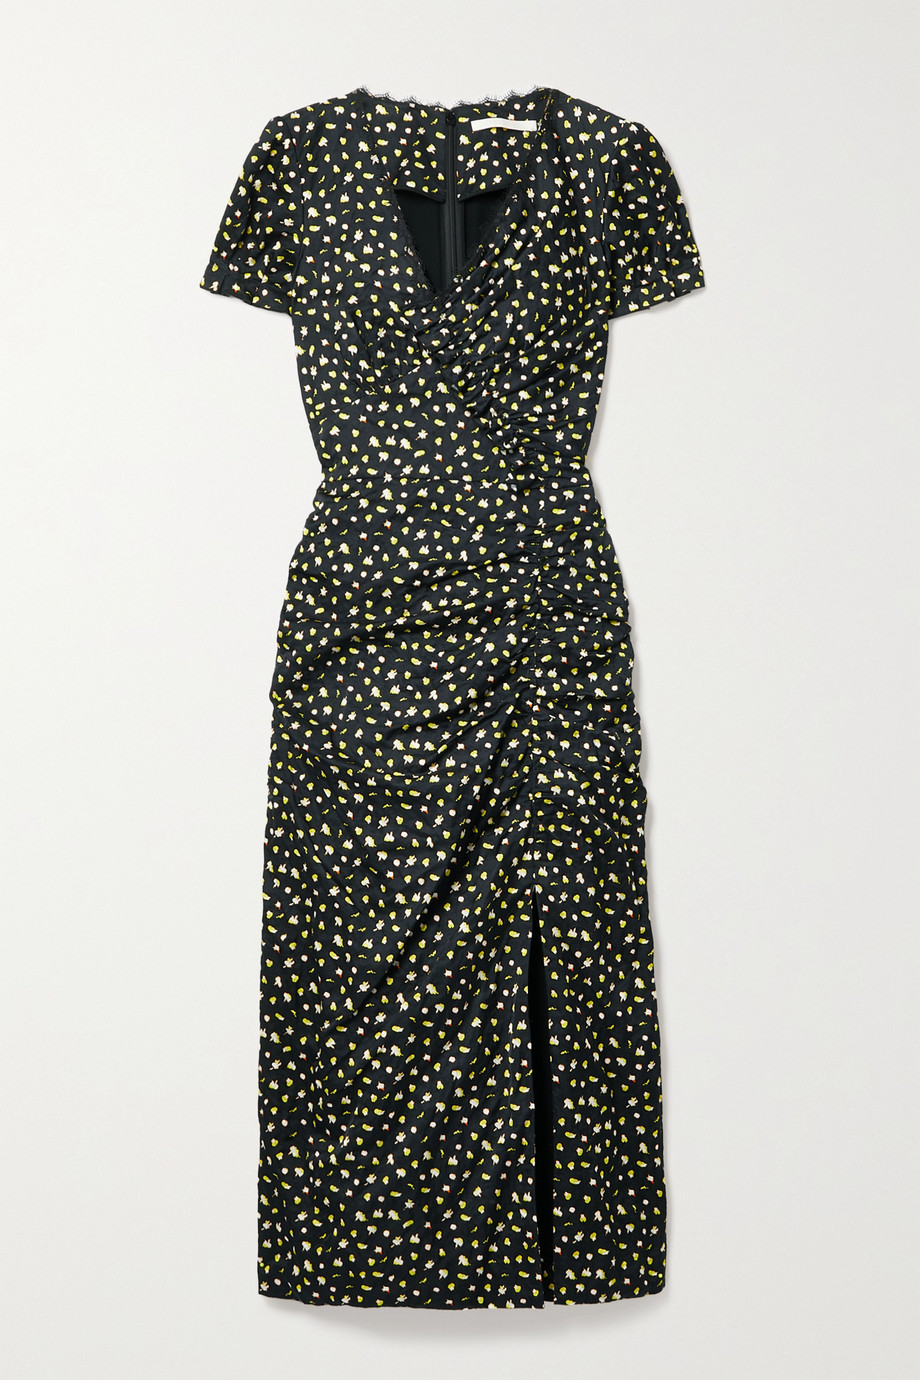 Jason Wu Collection Lace-trimmed gathered floral-print crinkled-satin midi dress